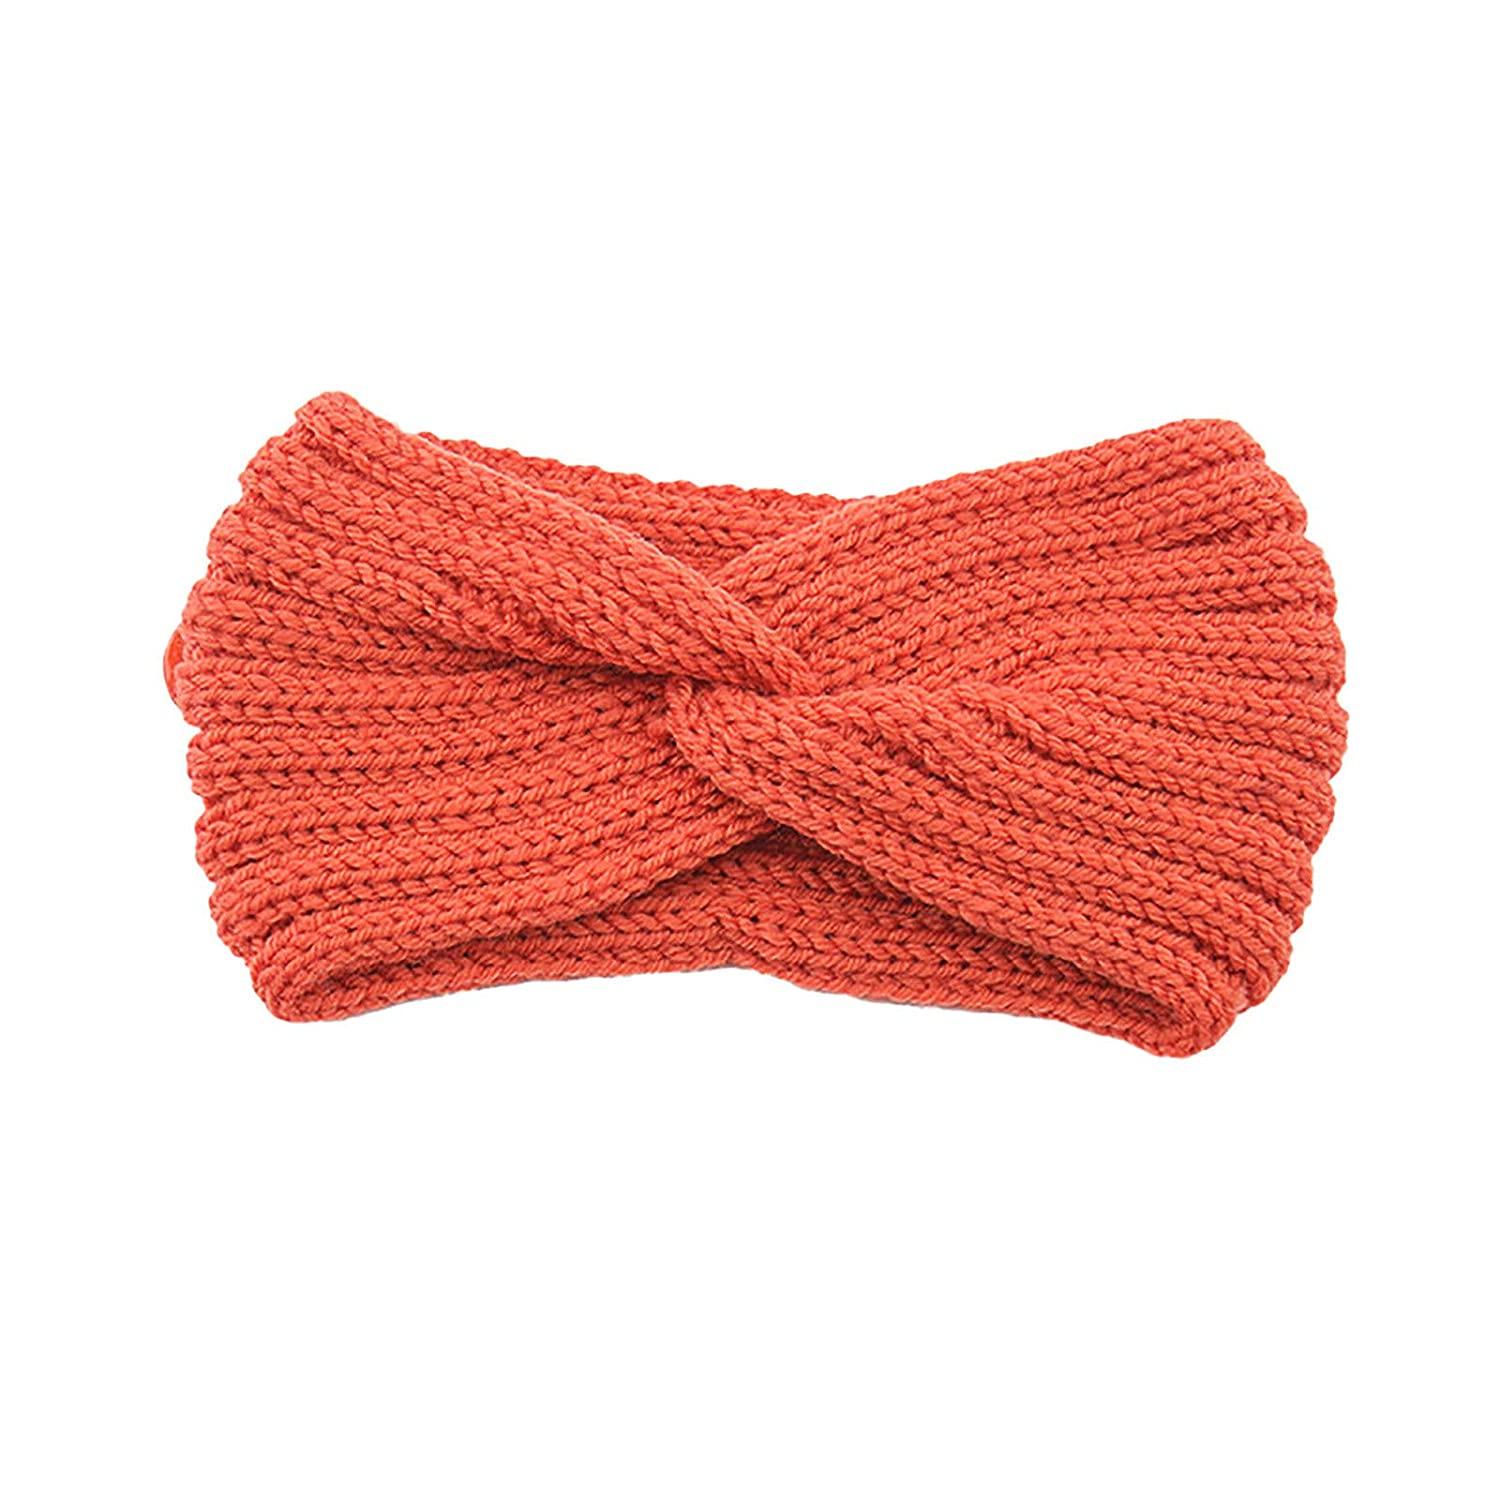 Thatso Winter Headbands for Women, Ear Warmer Headband with Buttons, Soft Stretchy Thick Cable Knitted Turban Hairband Gift (Orange,One Size)